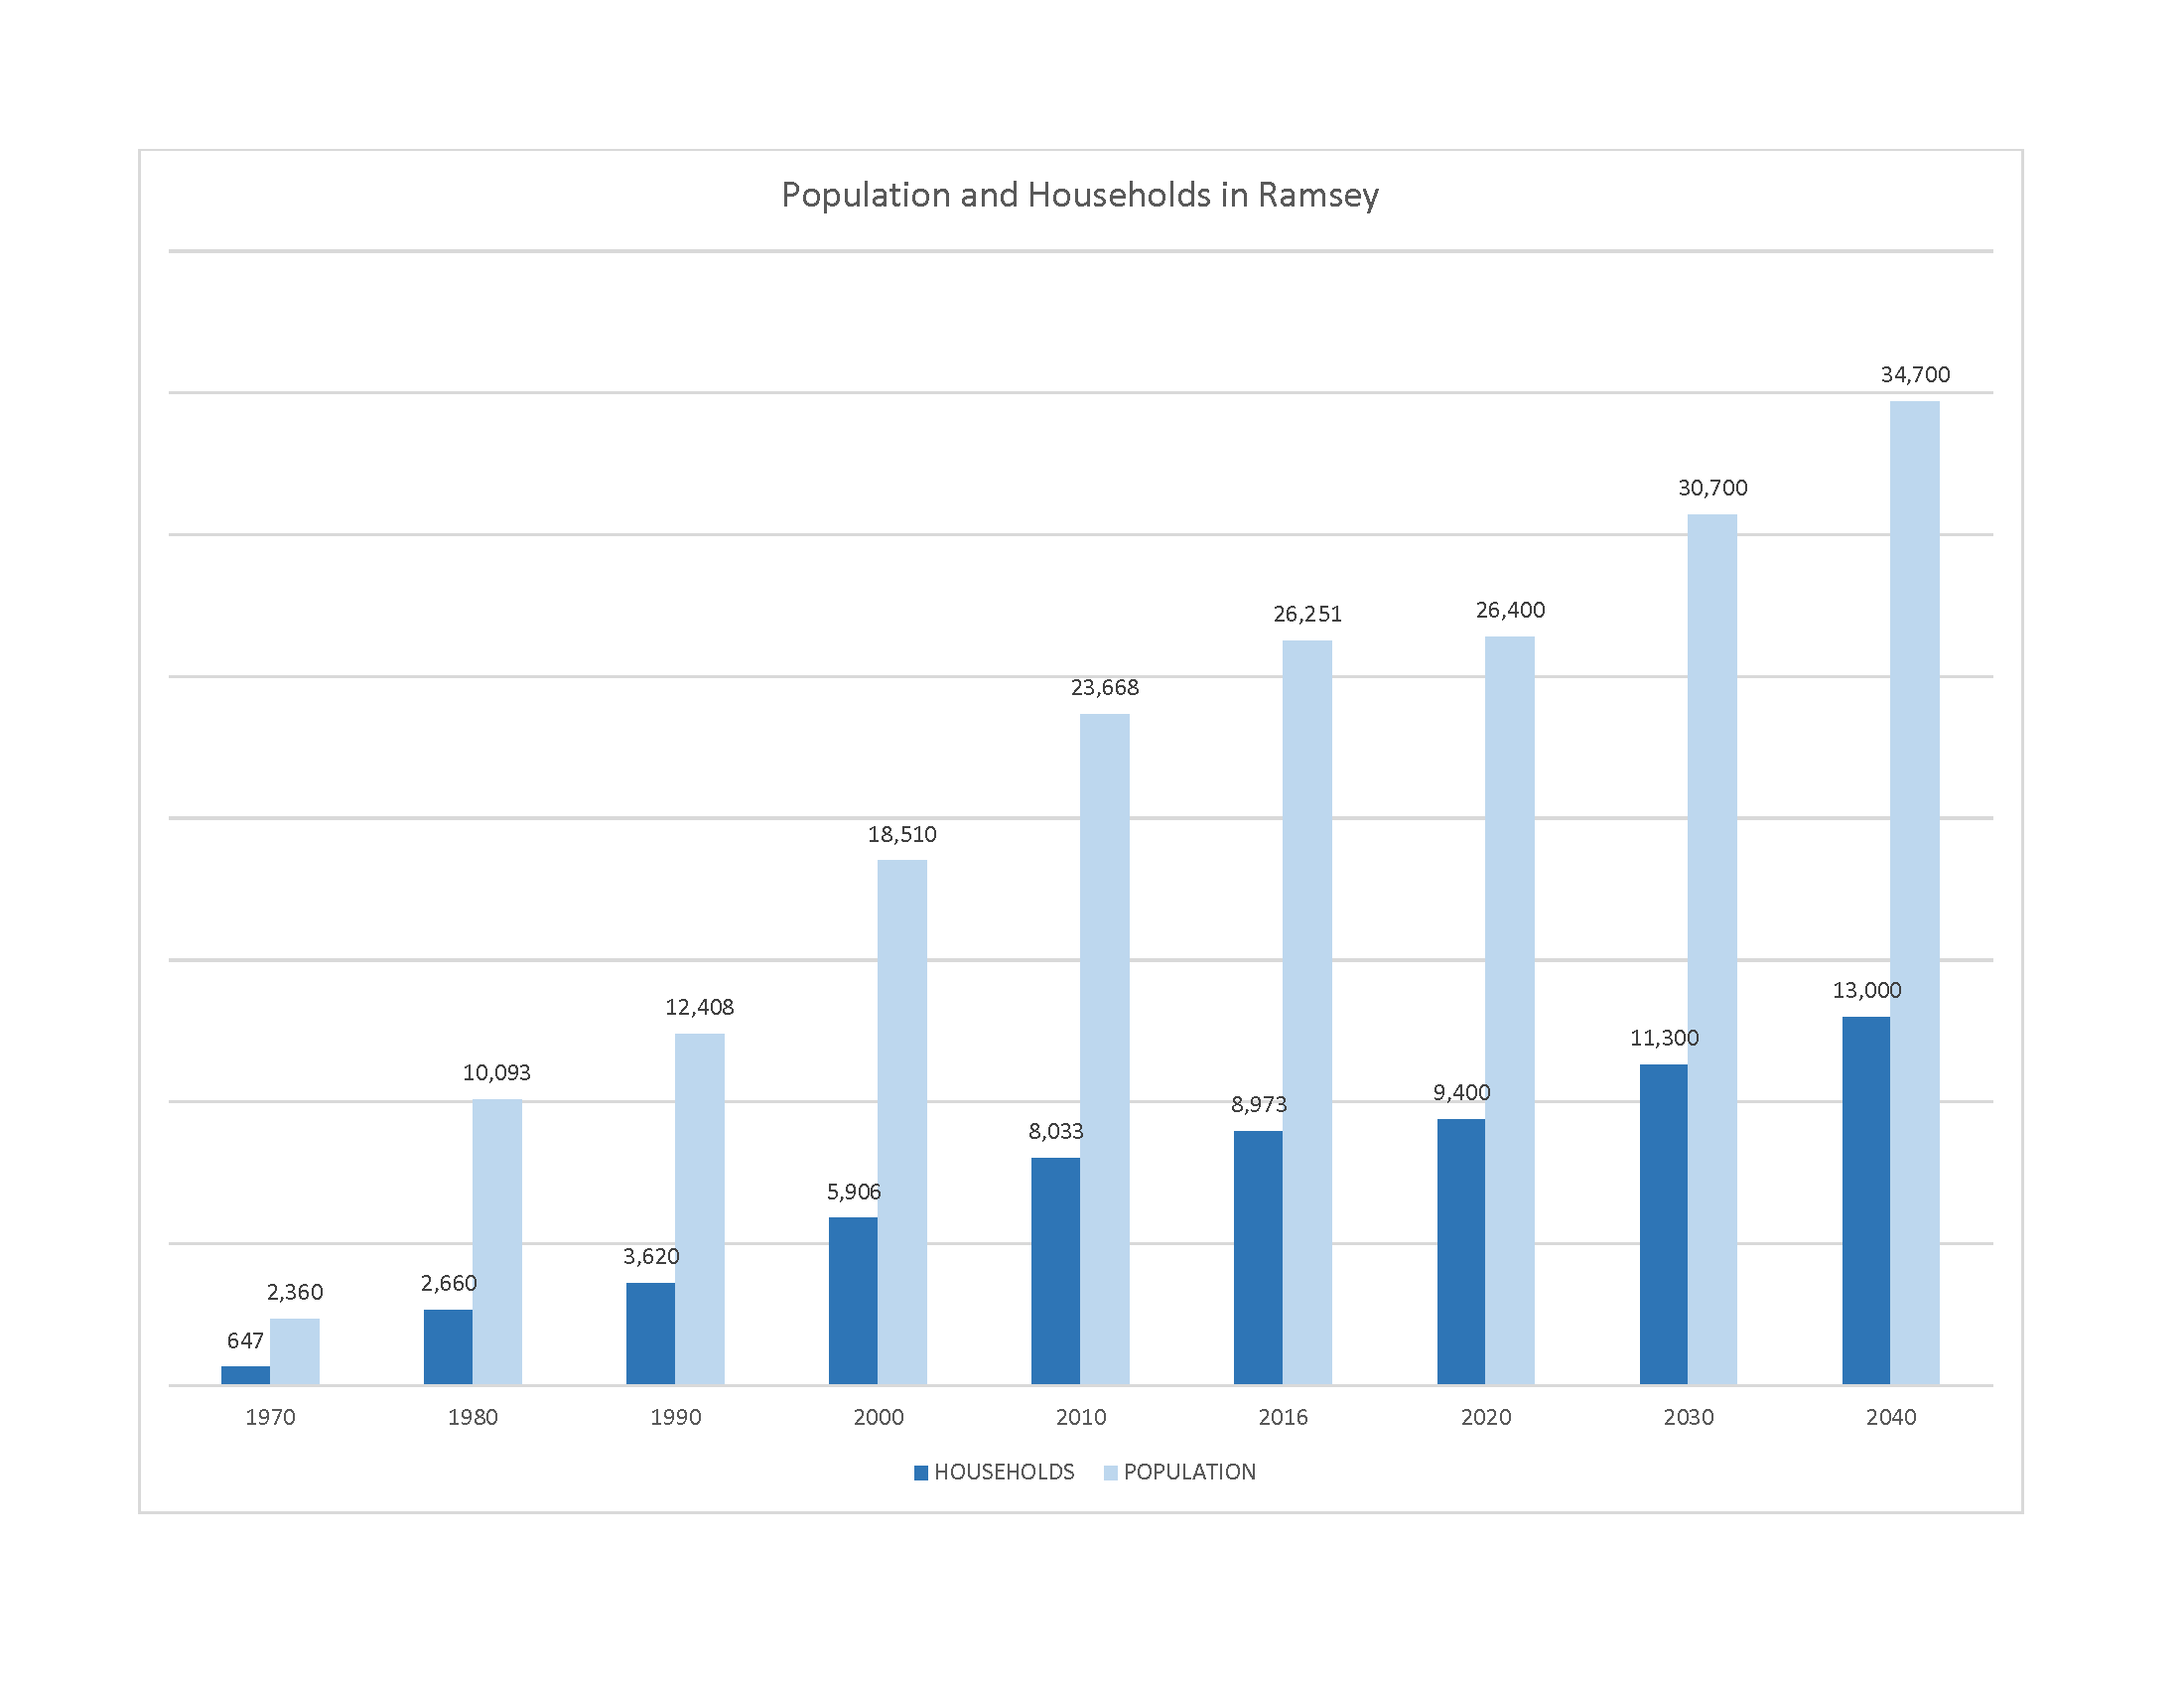 Forecasts for population and households for Ramsey in the year 2040